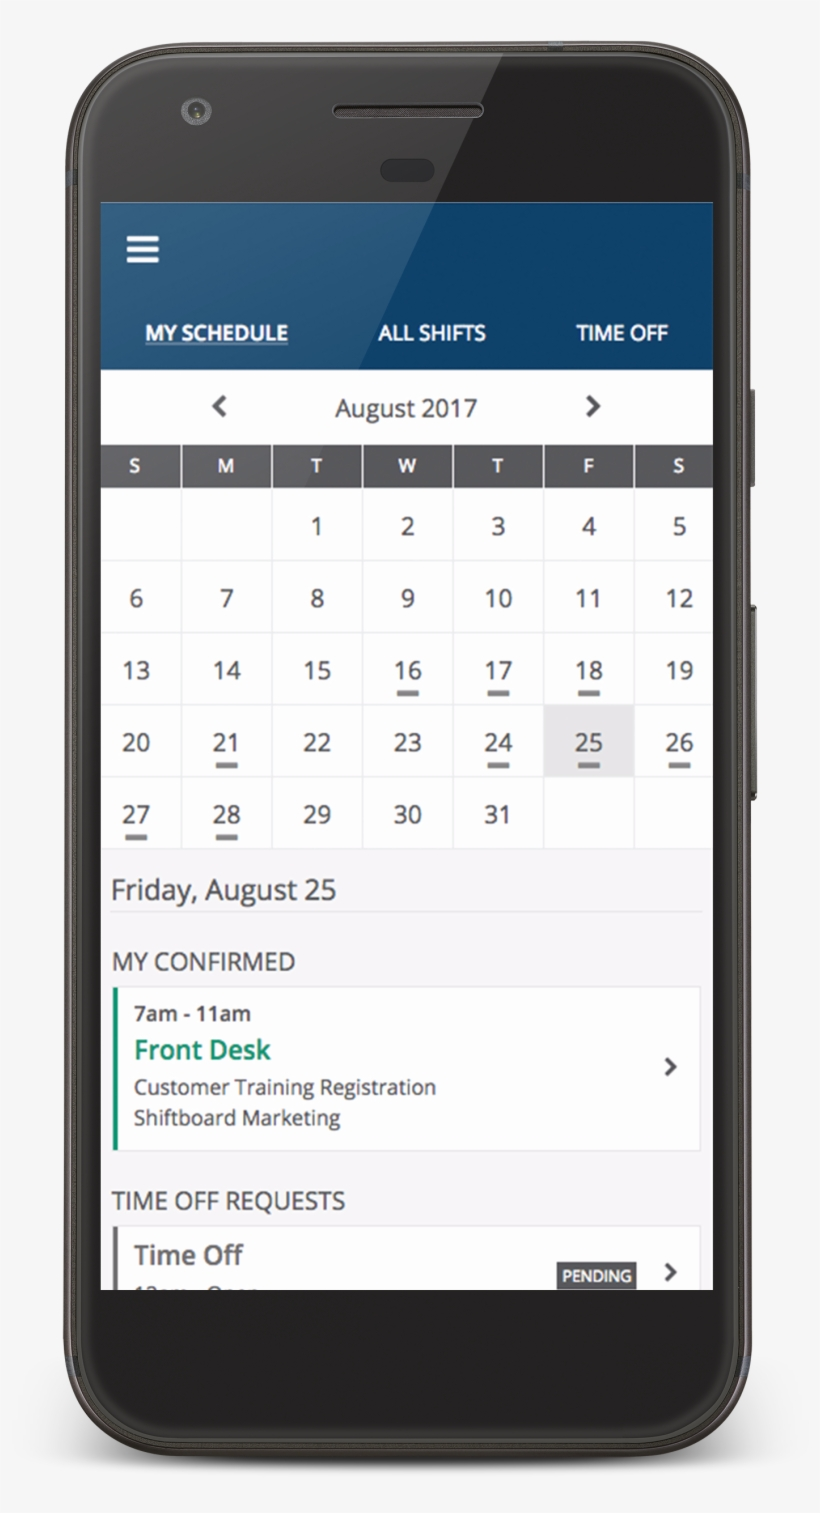 Members Will Want To Use The Calendar View When Requesting